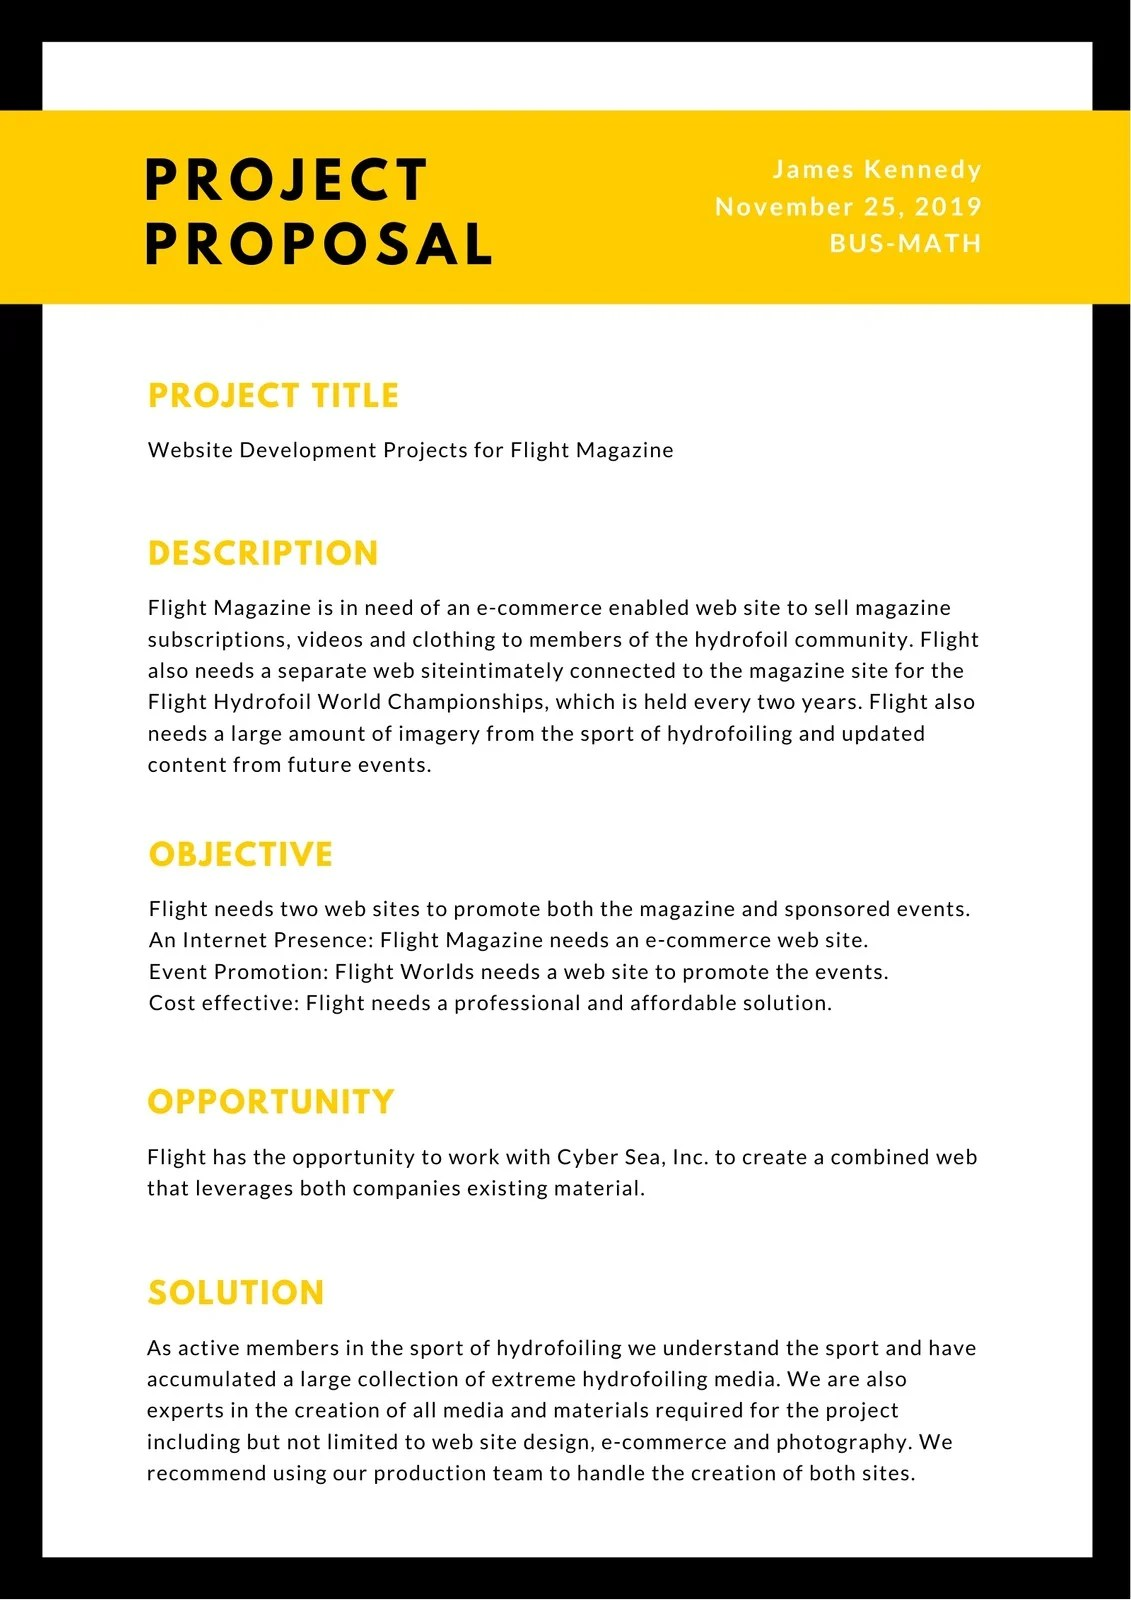 Felix von blücher (navigant) submission date: Free Printable Editable Proposal Templates For Work Or School Canva